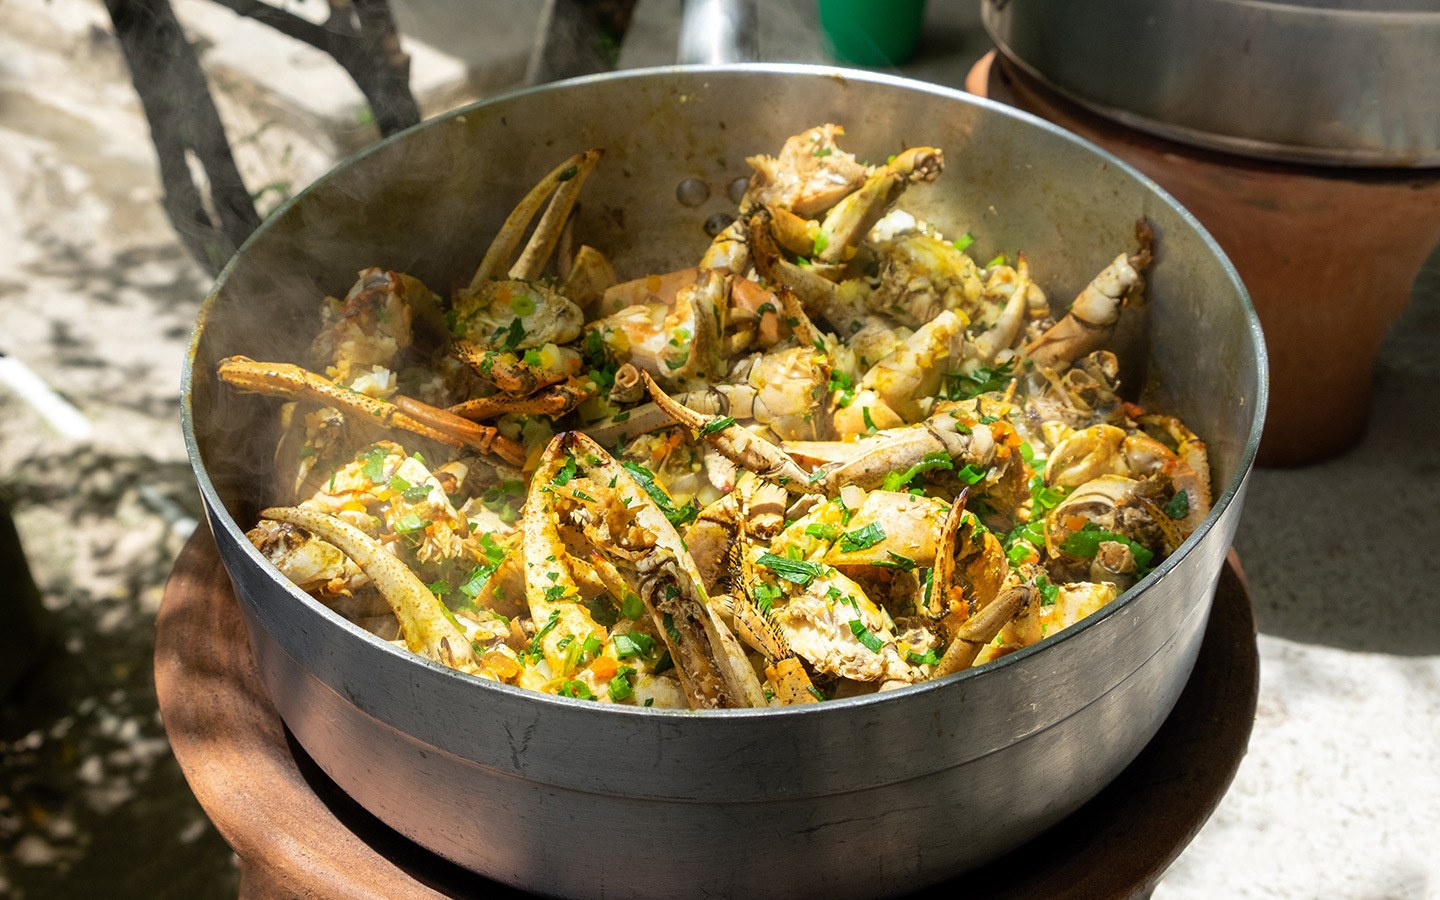 Exploring the food in Saint Lucia with three culinary experiences – a Castries market tour, Creole cookery class and high-end cuisine with a local chef.